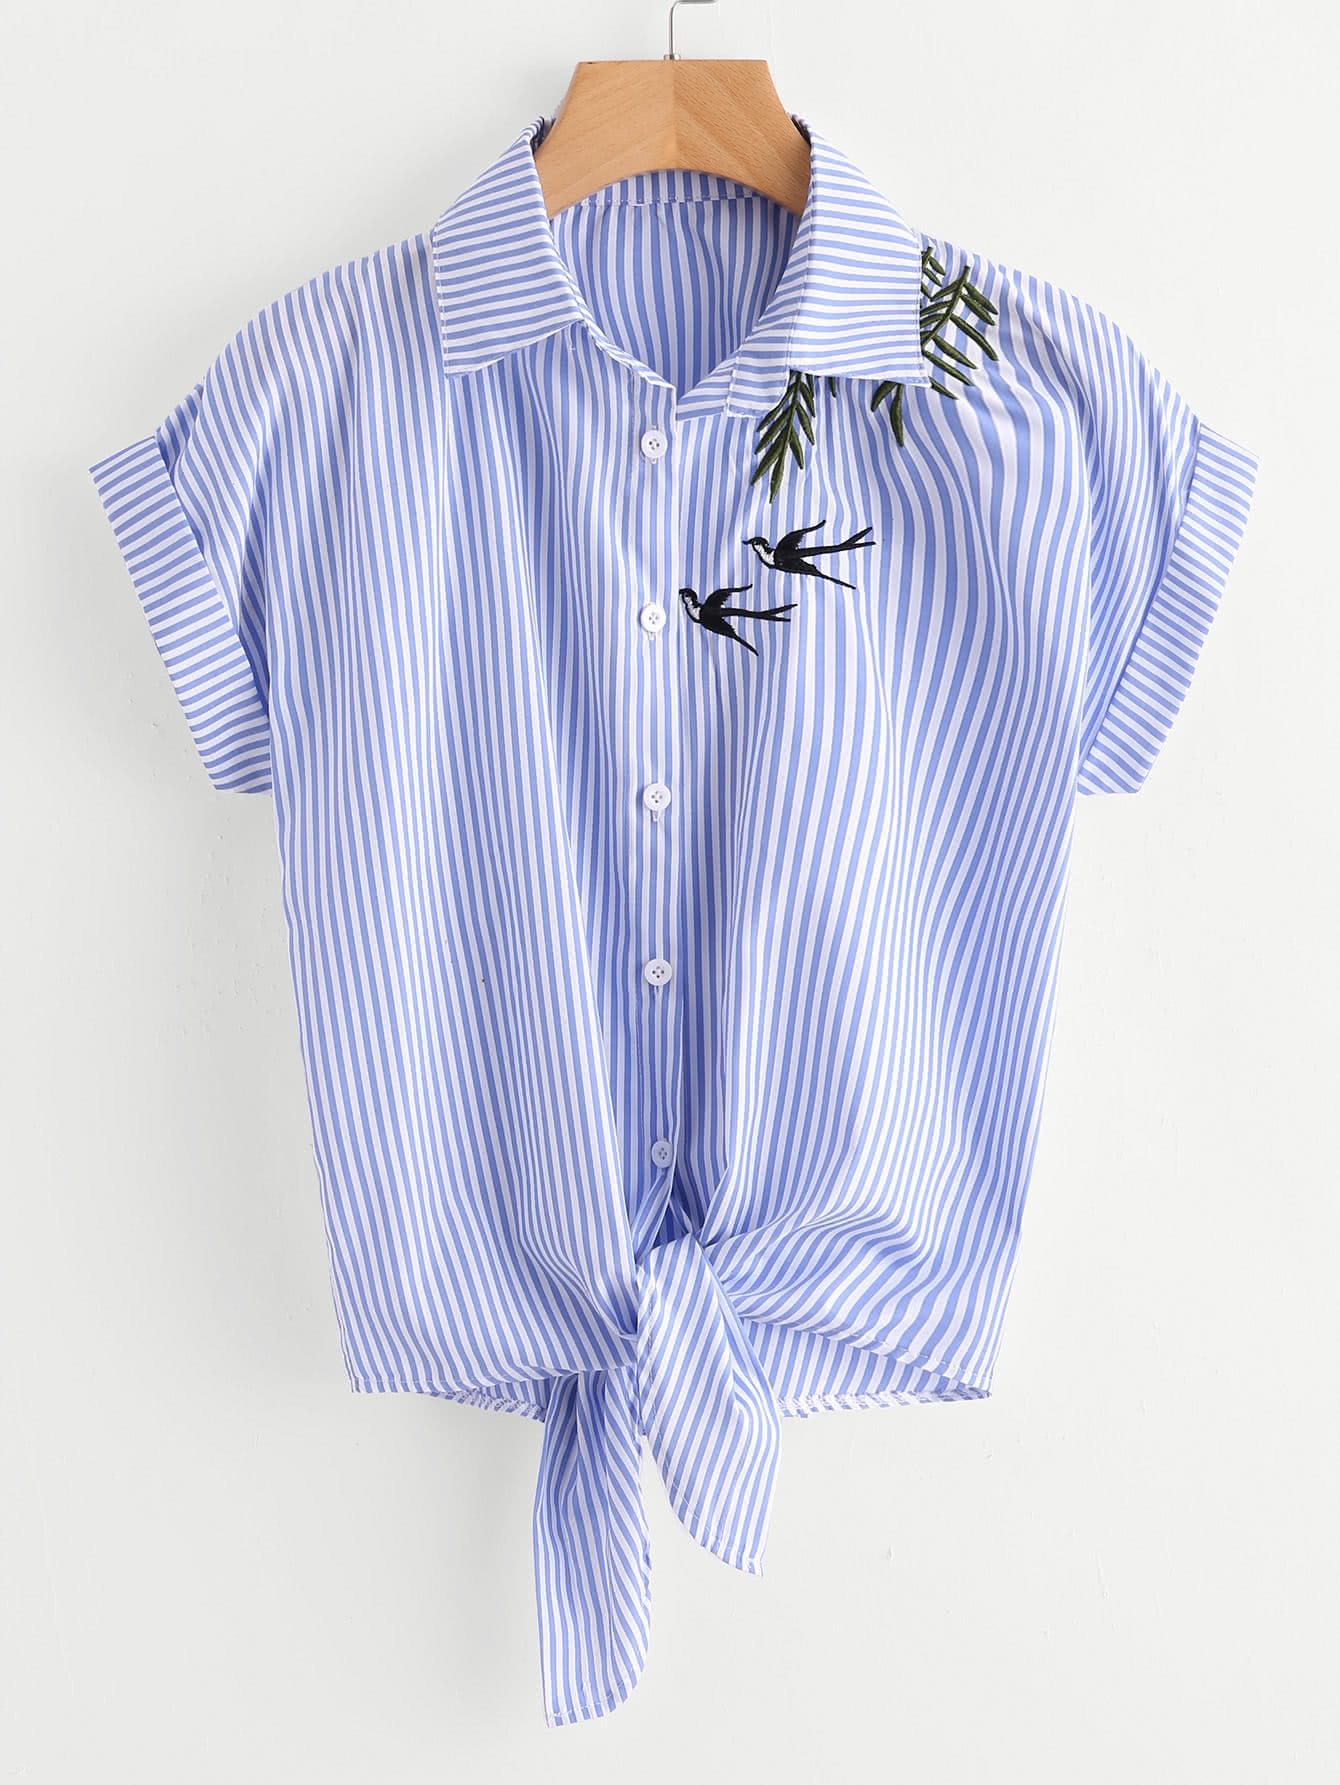 Swallows Embroidered Striped Knot Front Cuffed Shirt back pleat embroidered striped shirt